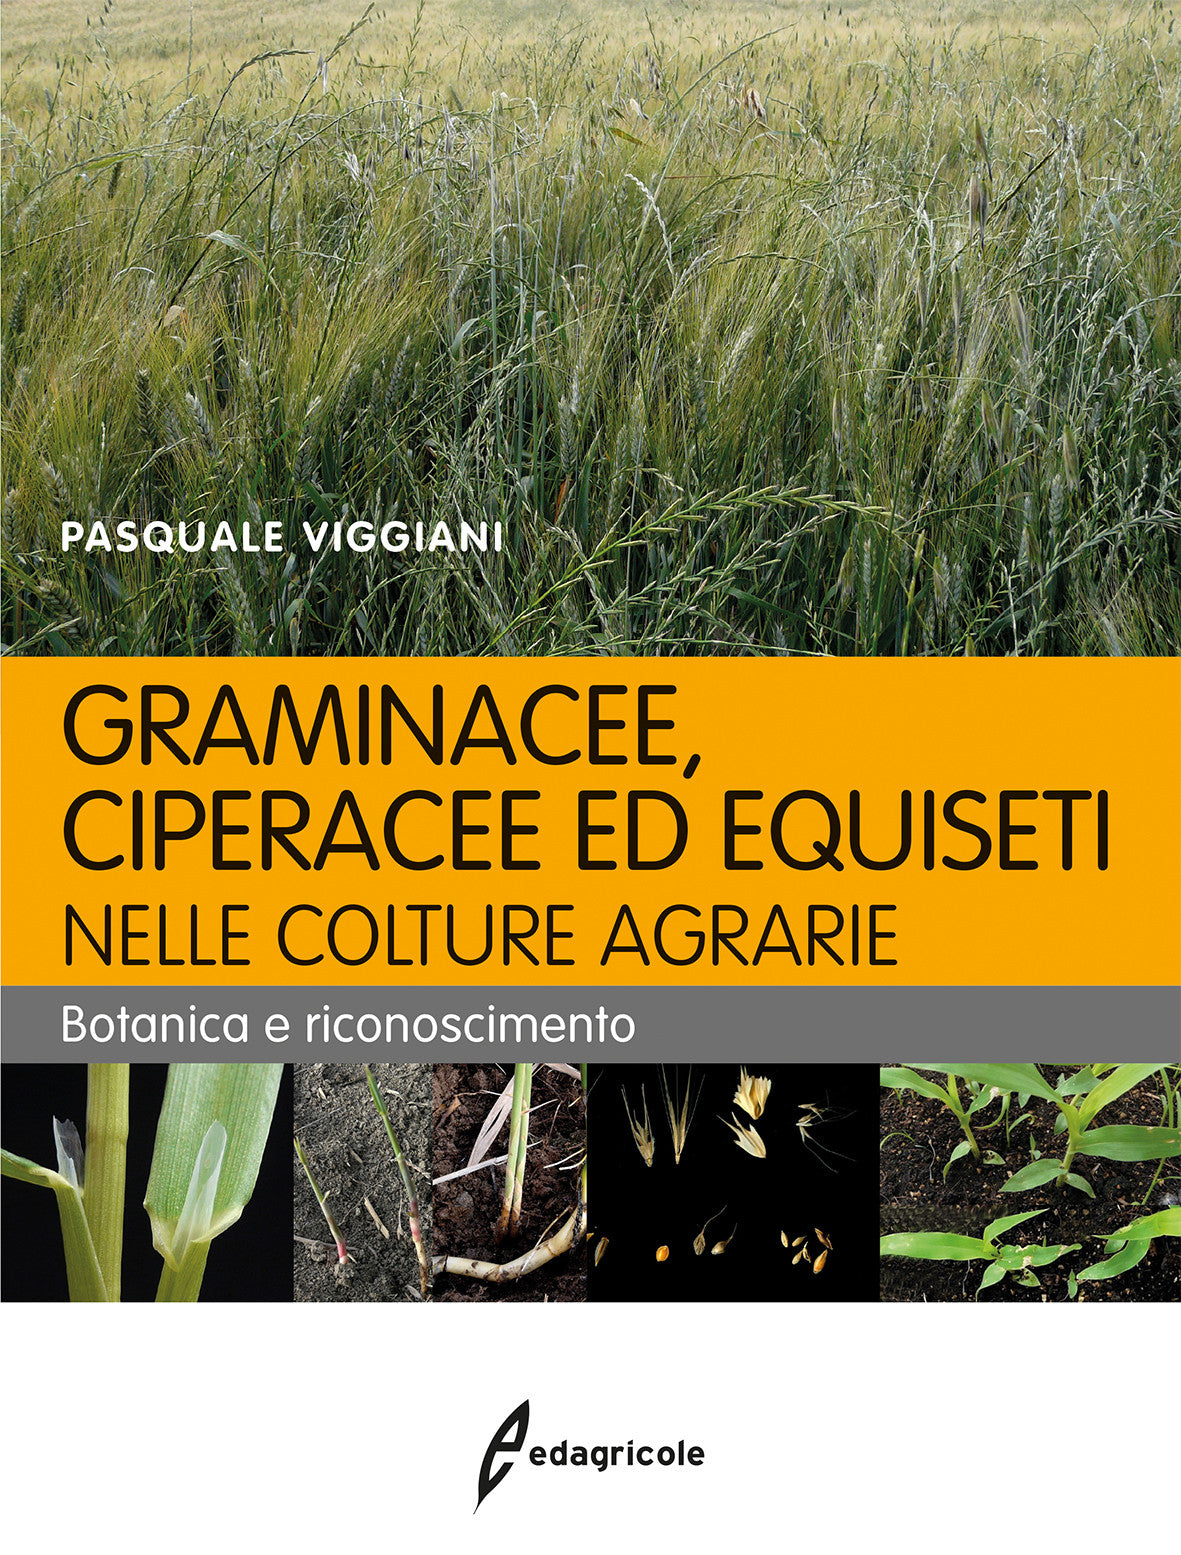 Graminacee, ciperacee ed equiseti nelle colture agrarie